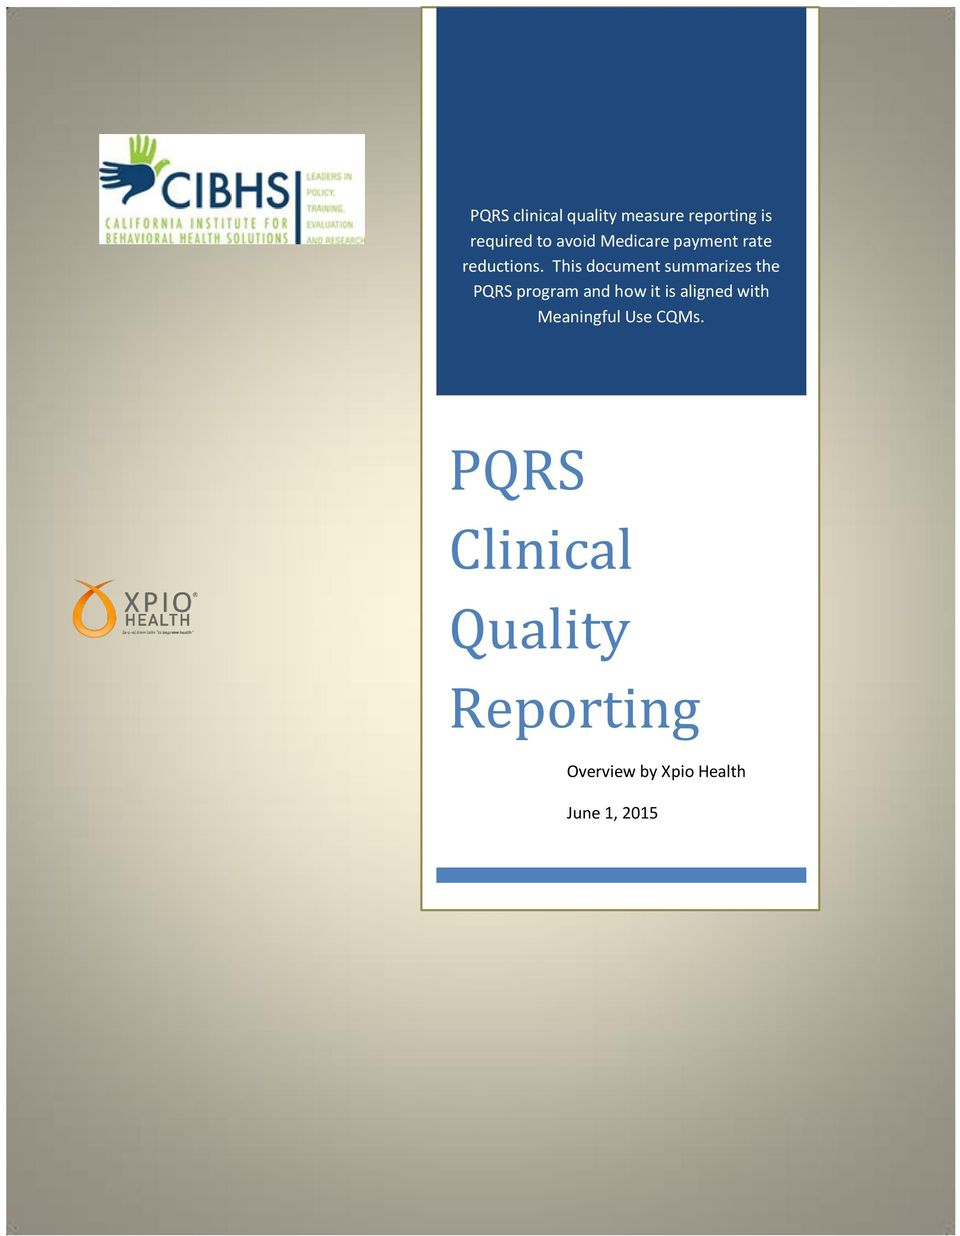 This document summarizes the PQRS program and how it is